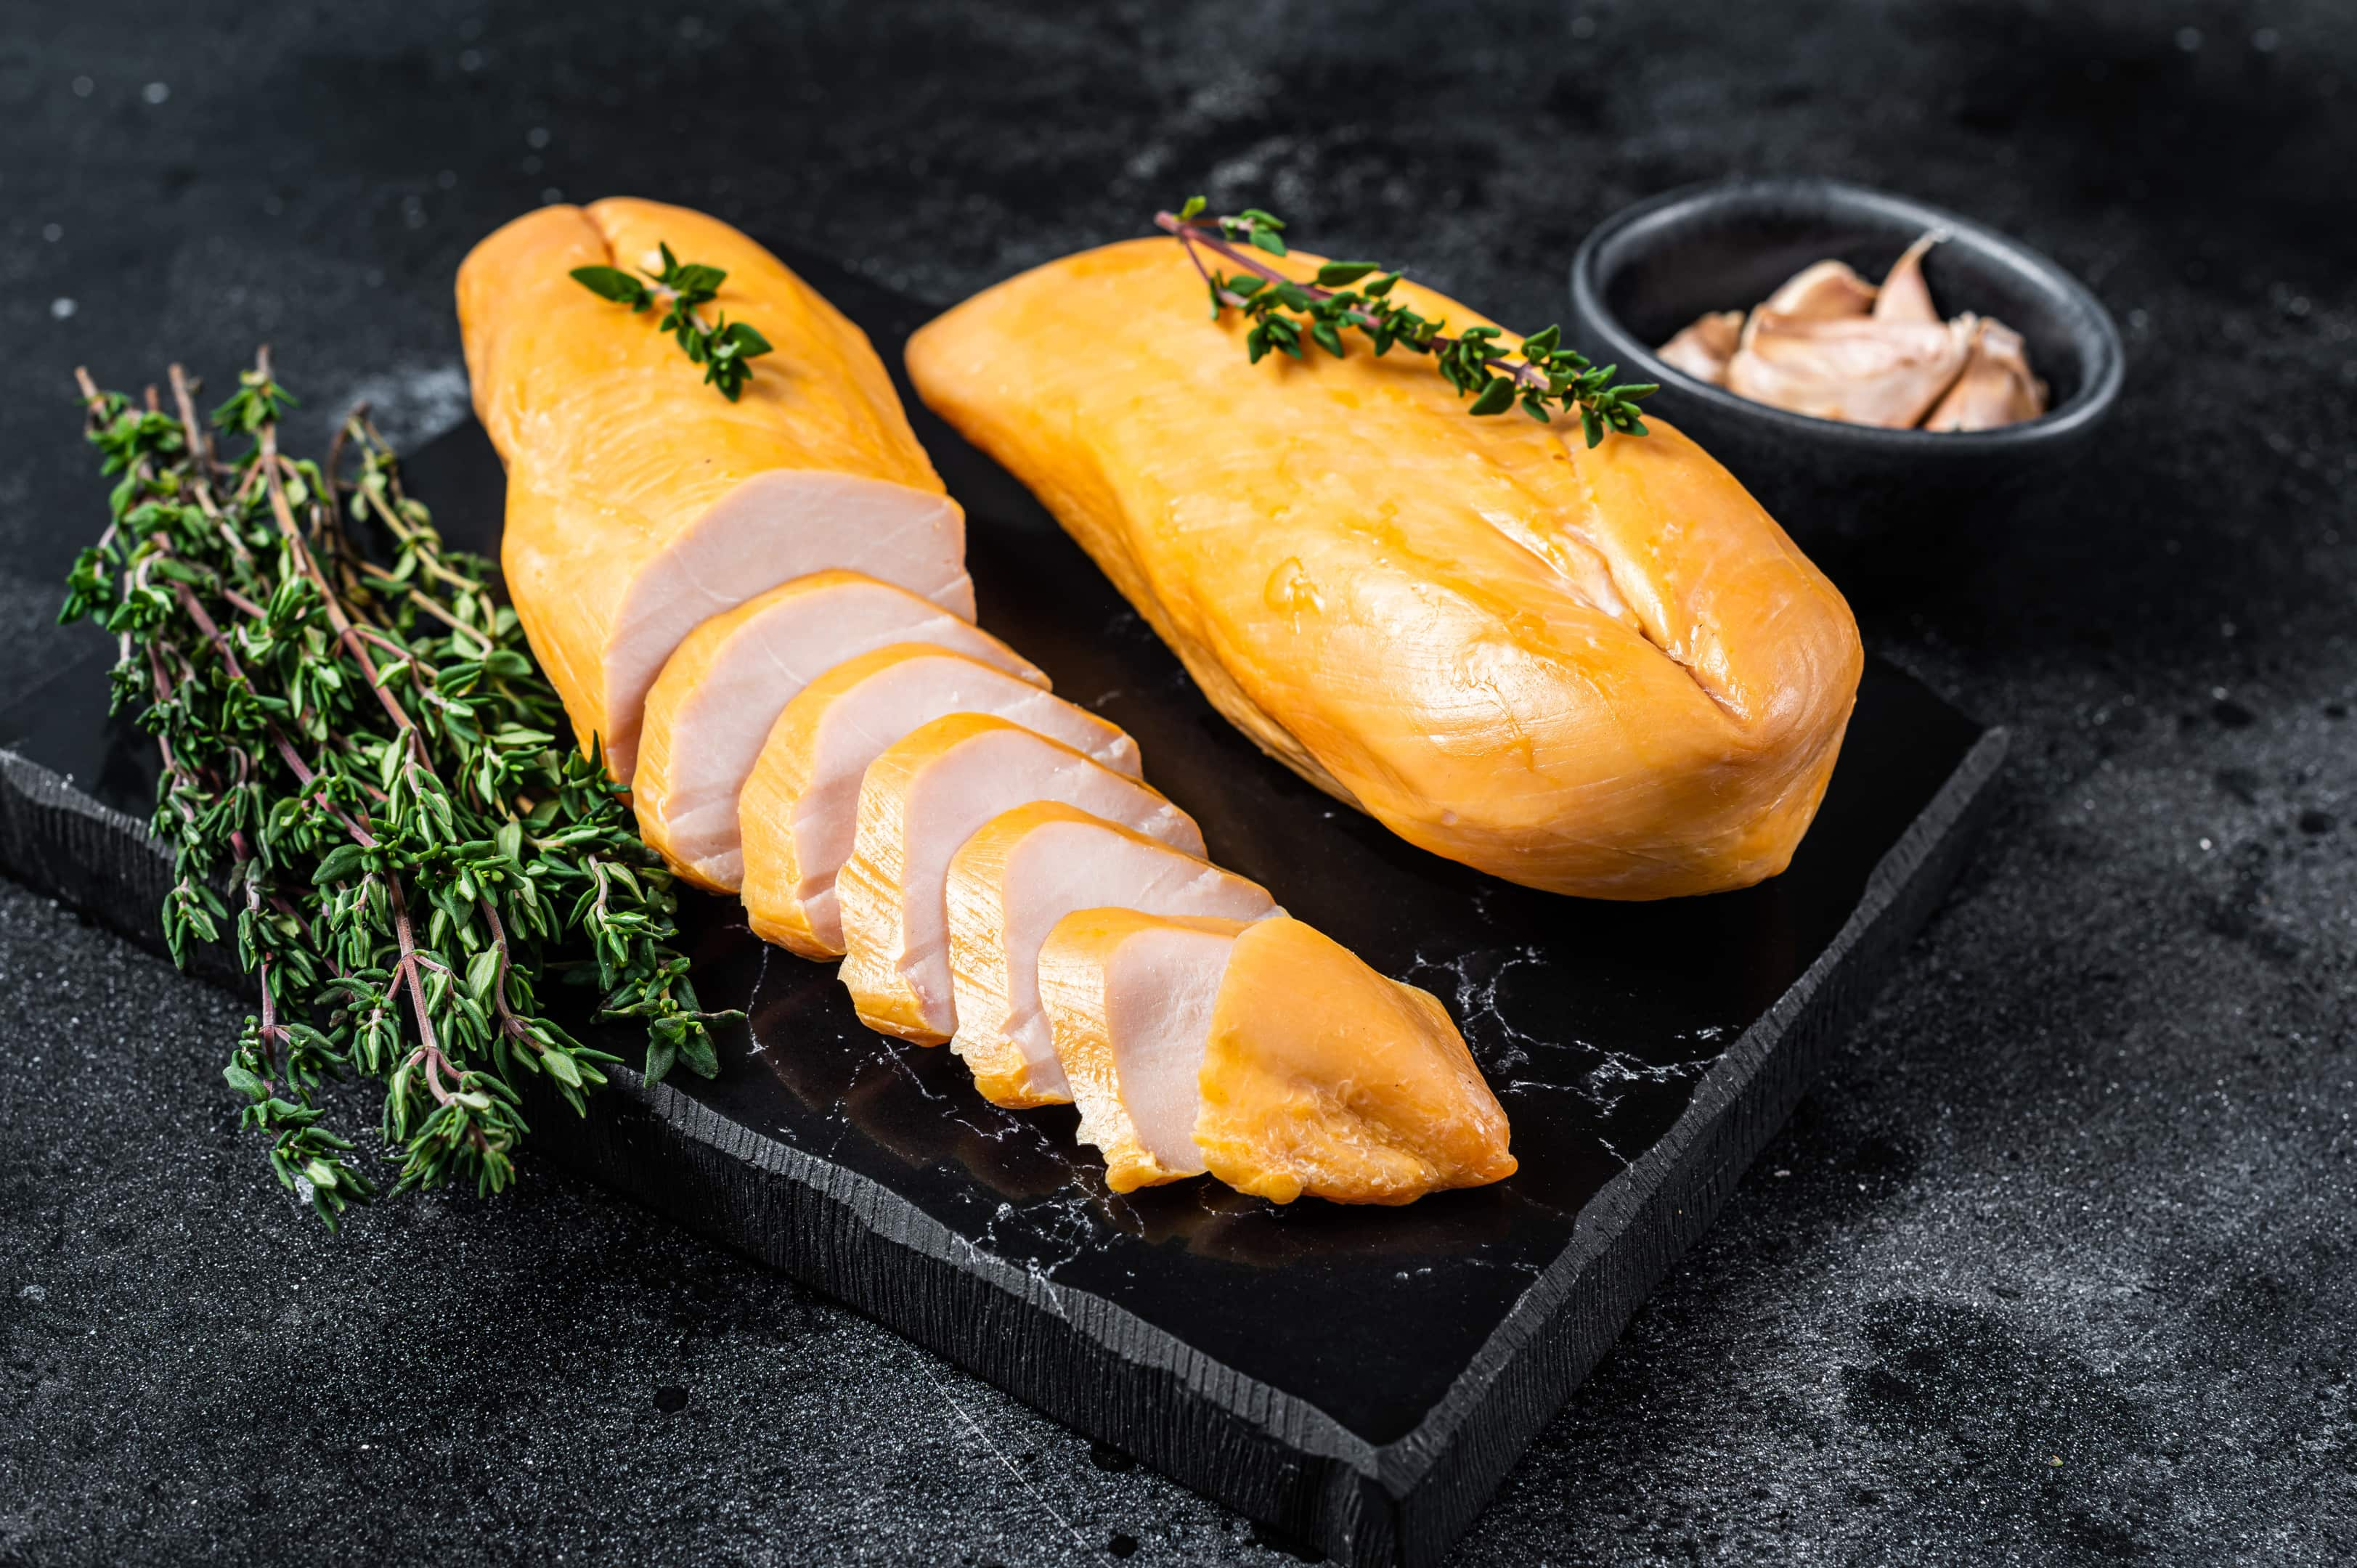 Smoked cut of chicken breast fillet on black table